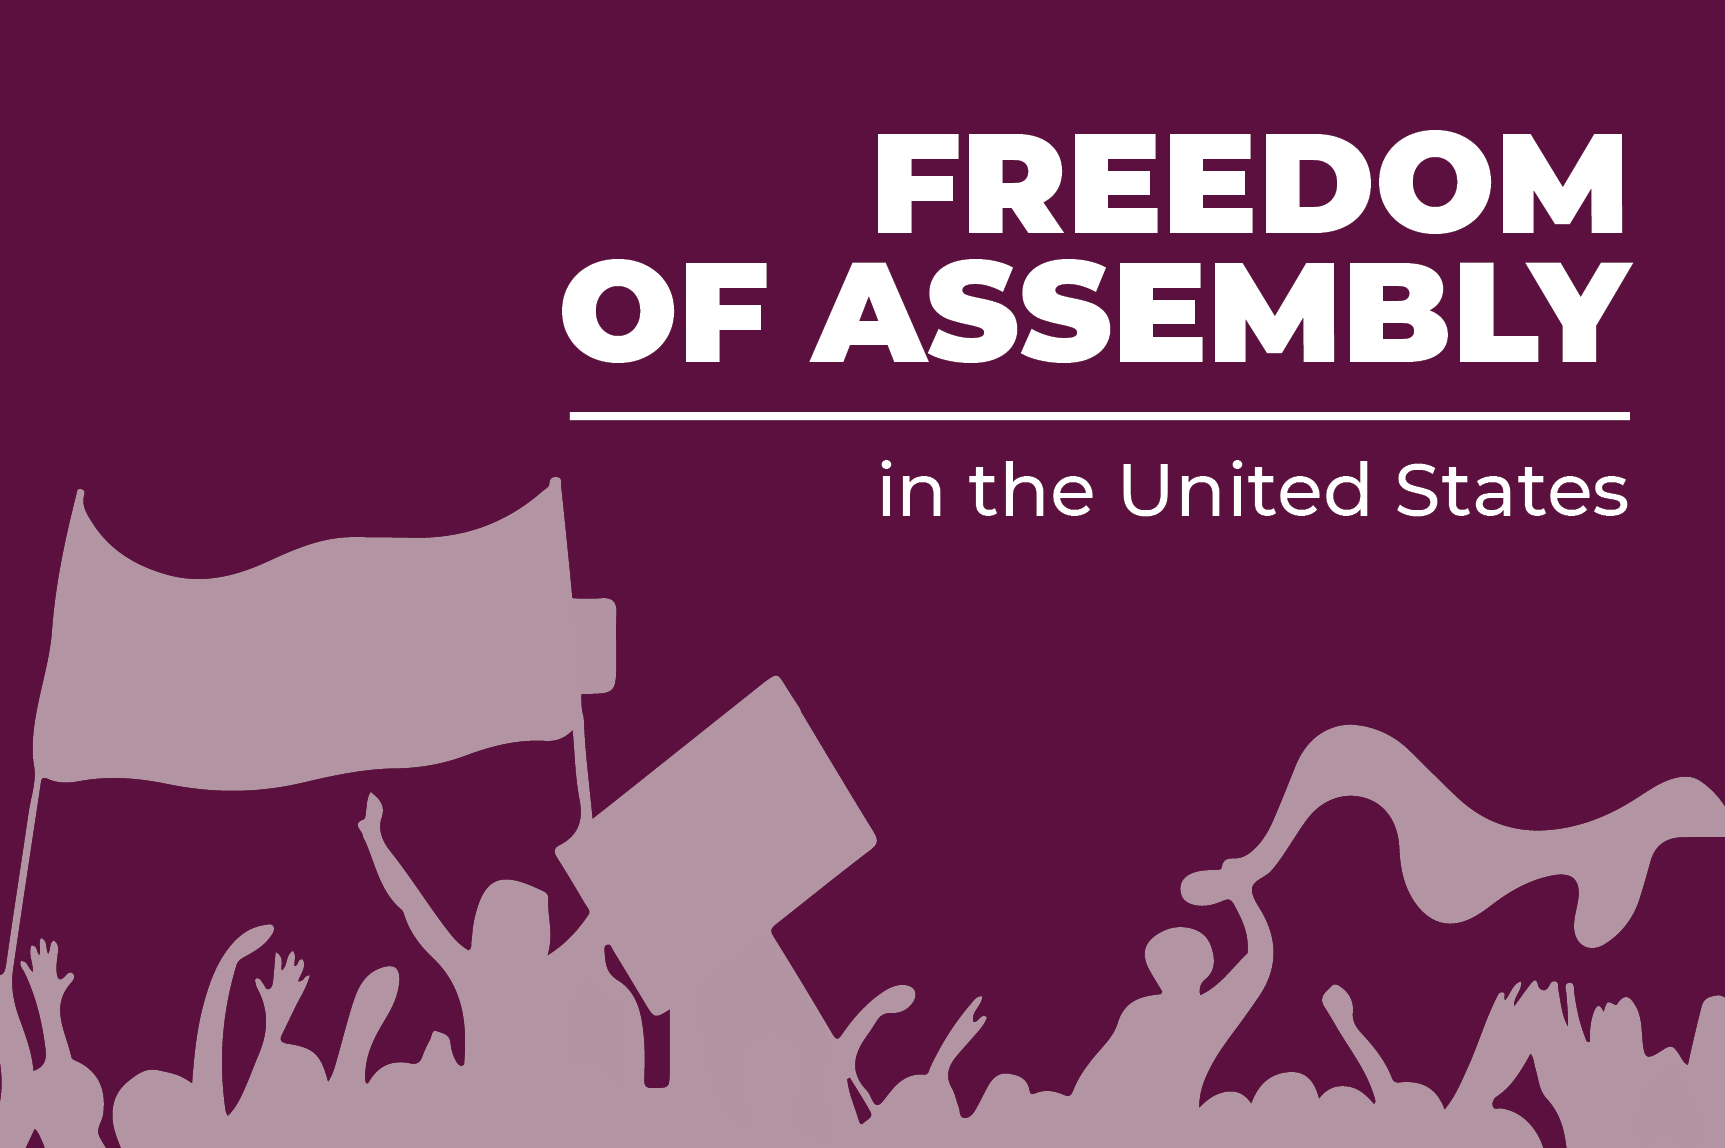 ICNL's work on issues impacting Freedom of Assembly in the U.S.